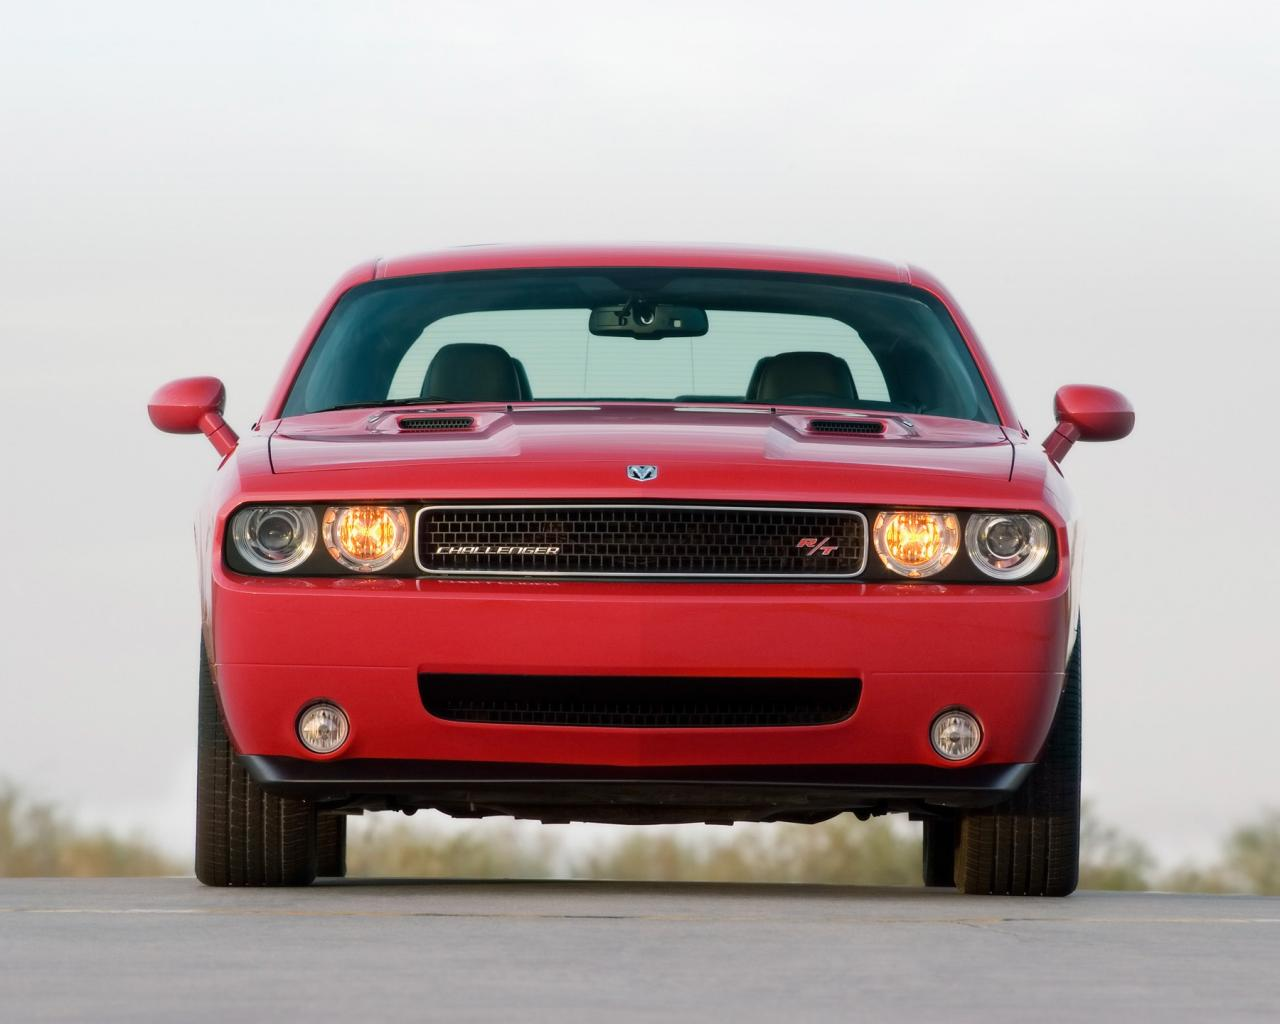 2009 Dodge Challenger Rt Front 1280x1024